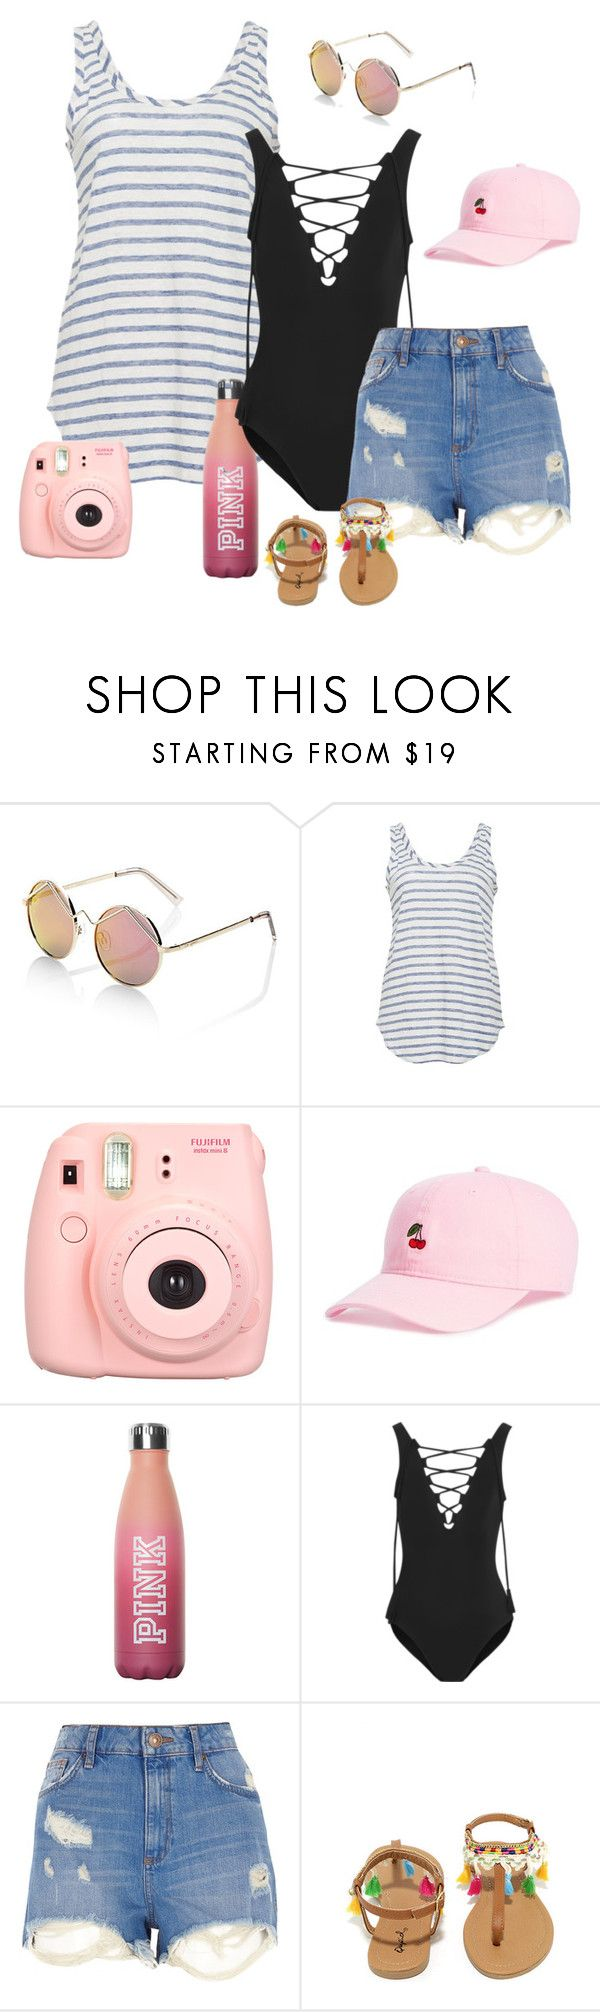 """Spring Break"" by marinavl ❤ liked on Polyvore featuring Le Specs, Polaroid, Body Rags, Karla Colletto, River Island and Qupid"